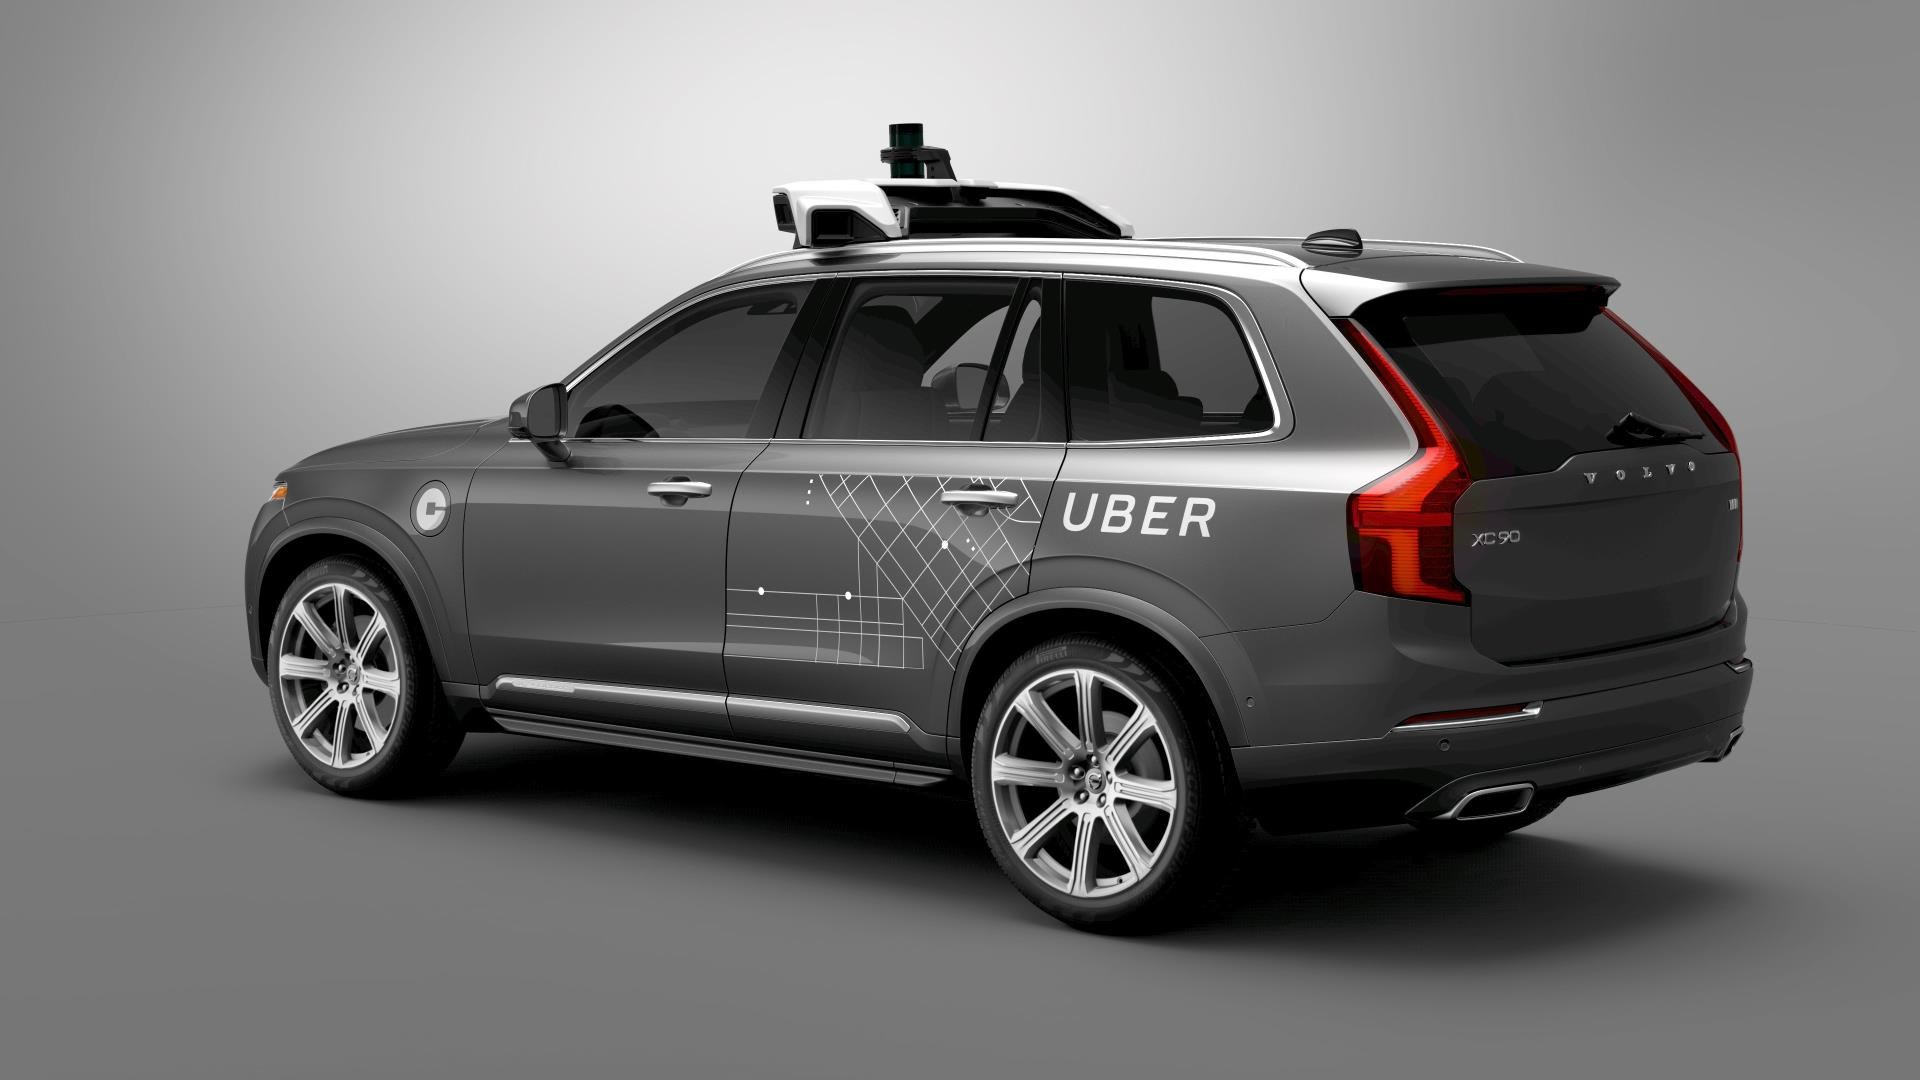 Expect 'tens of thousands' of driverless Uber Volvos between 2019-2021